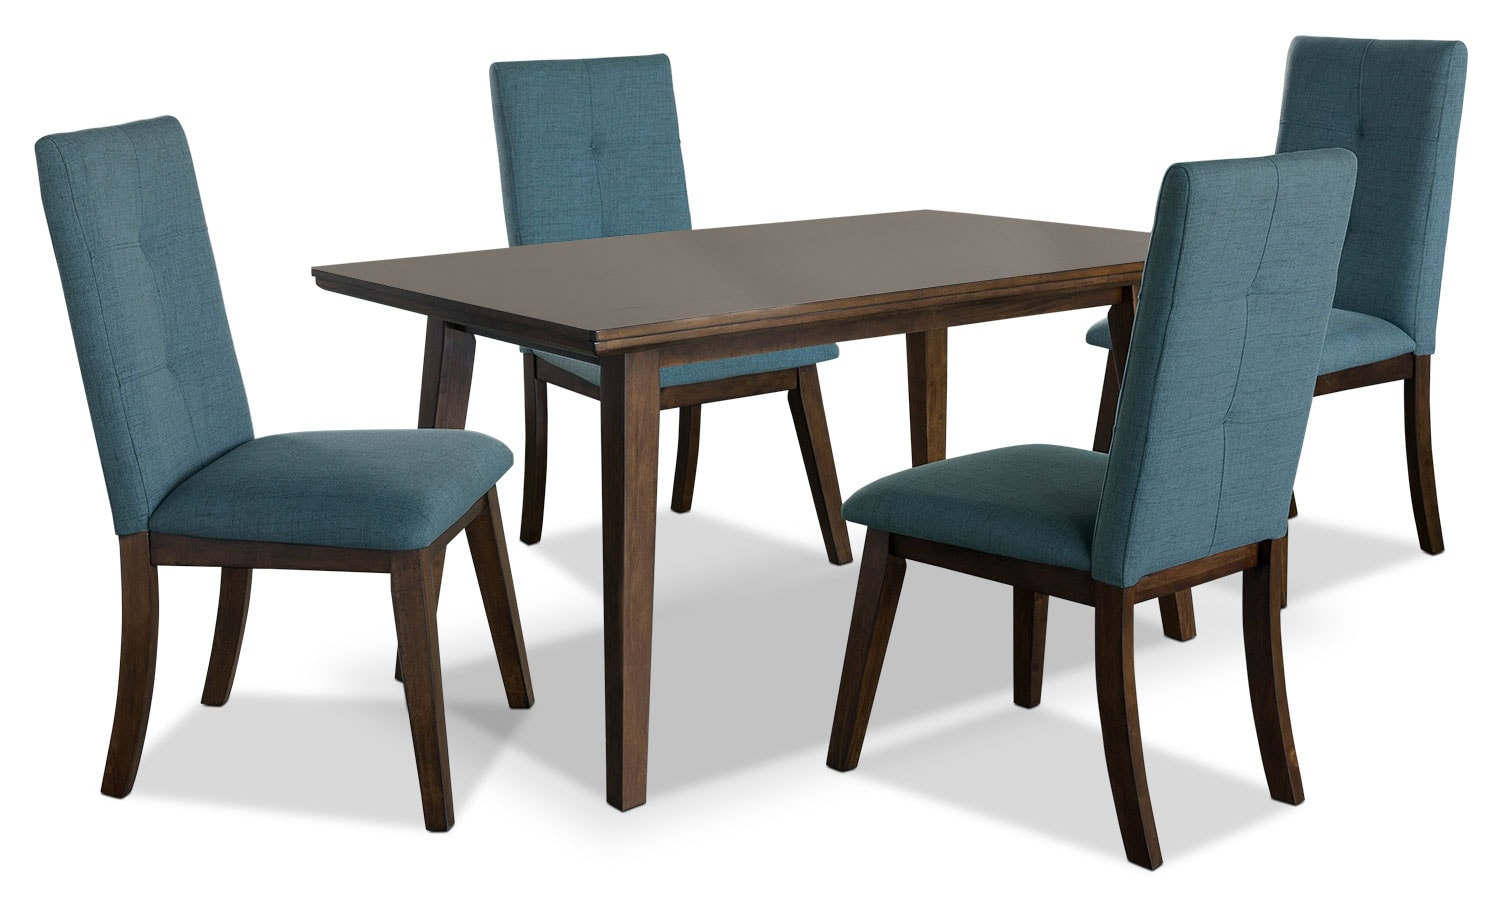 Dining Room Furniture - Chelsea 5-Piece Dining Package with Aqua Chairs